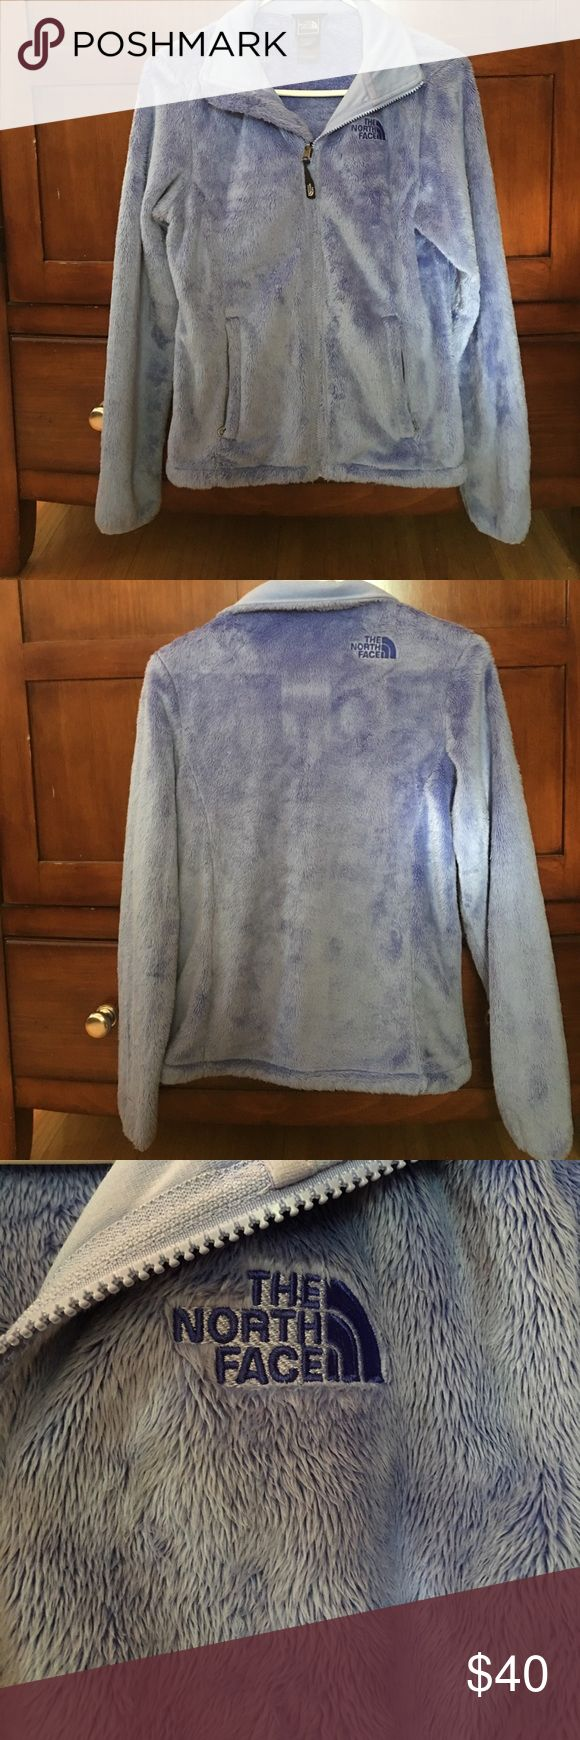 North Face Fleece Jacket In very good condition. Very soft, worn minimally. Light purple color! Full zip. Adjustable waist The North Face Jackets & Coats